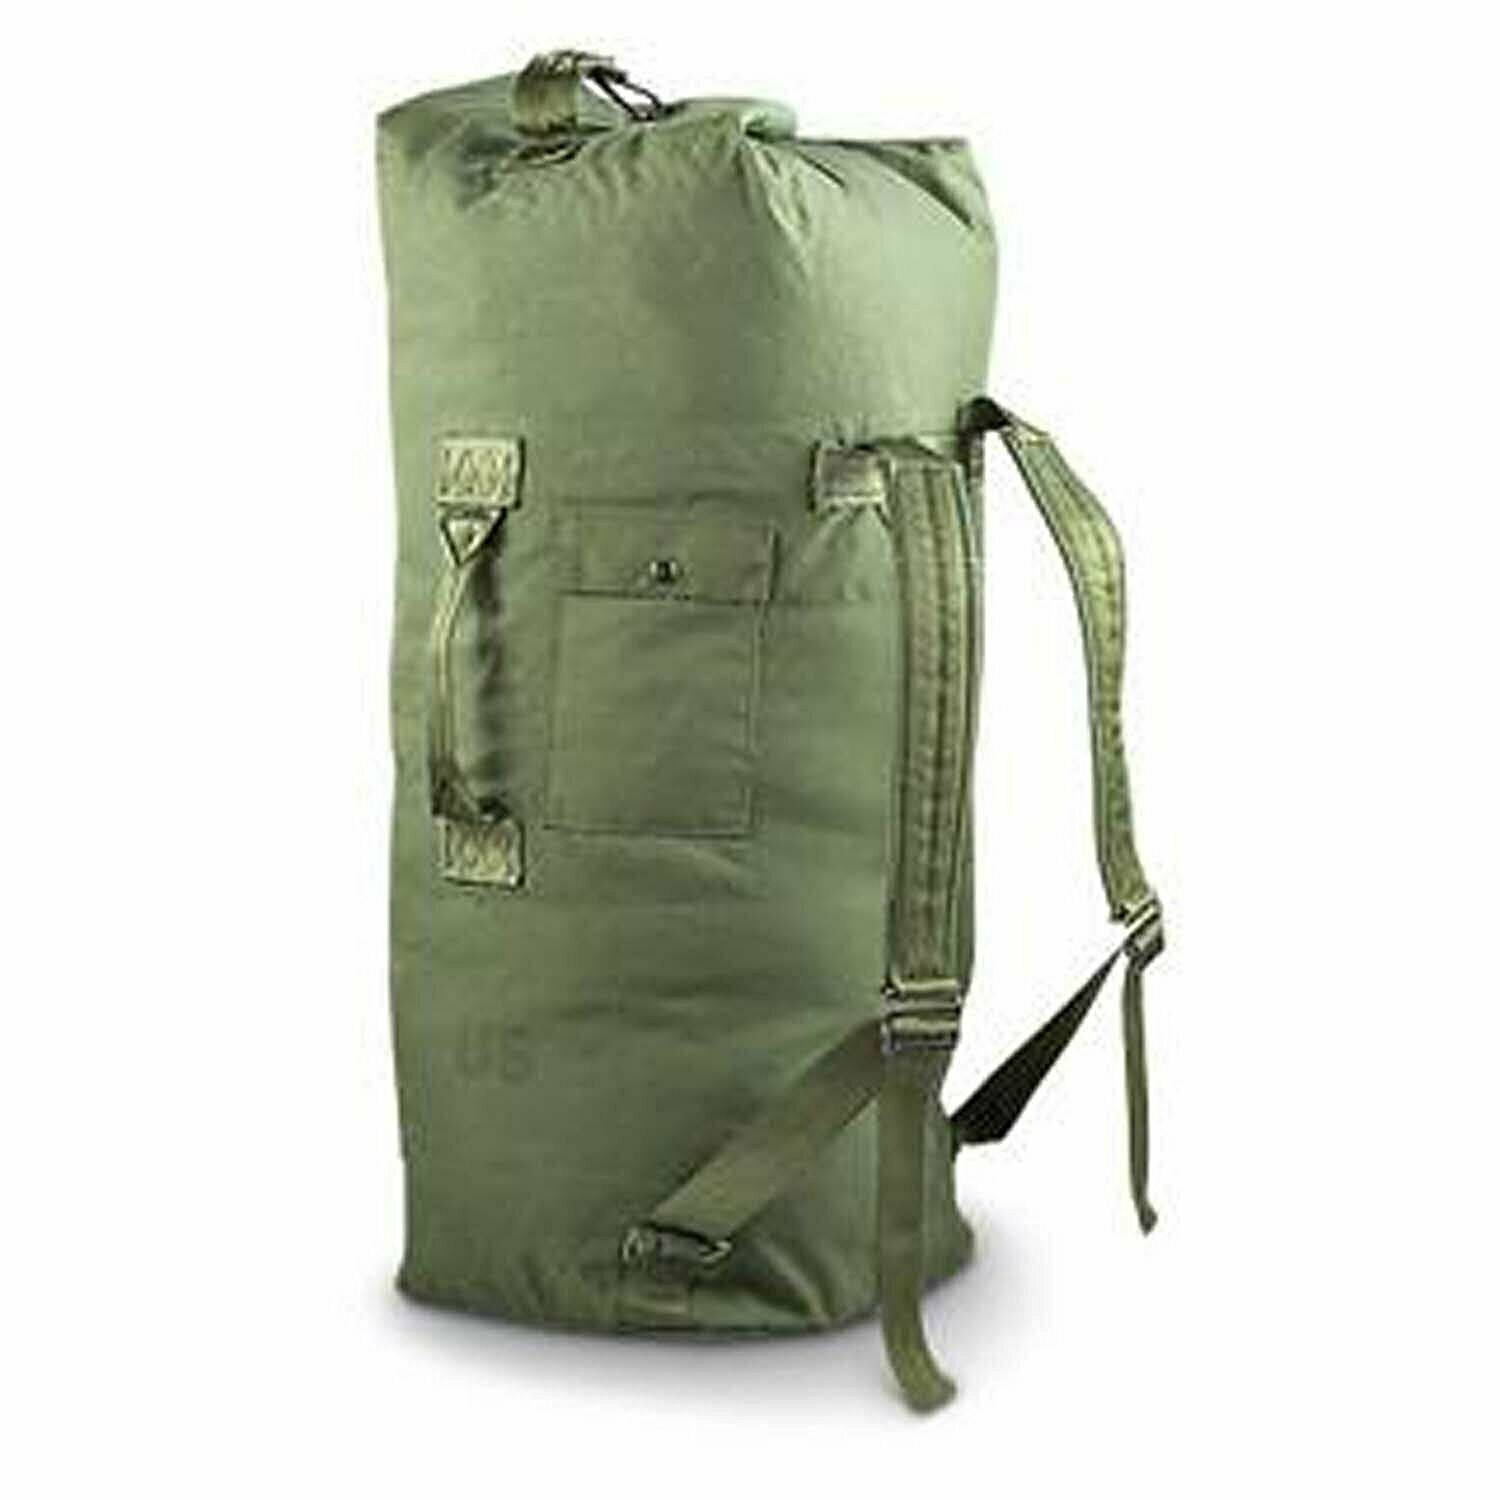 US Military Duffel Bag